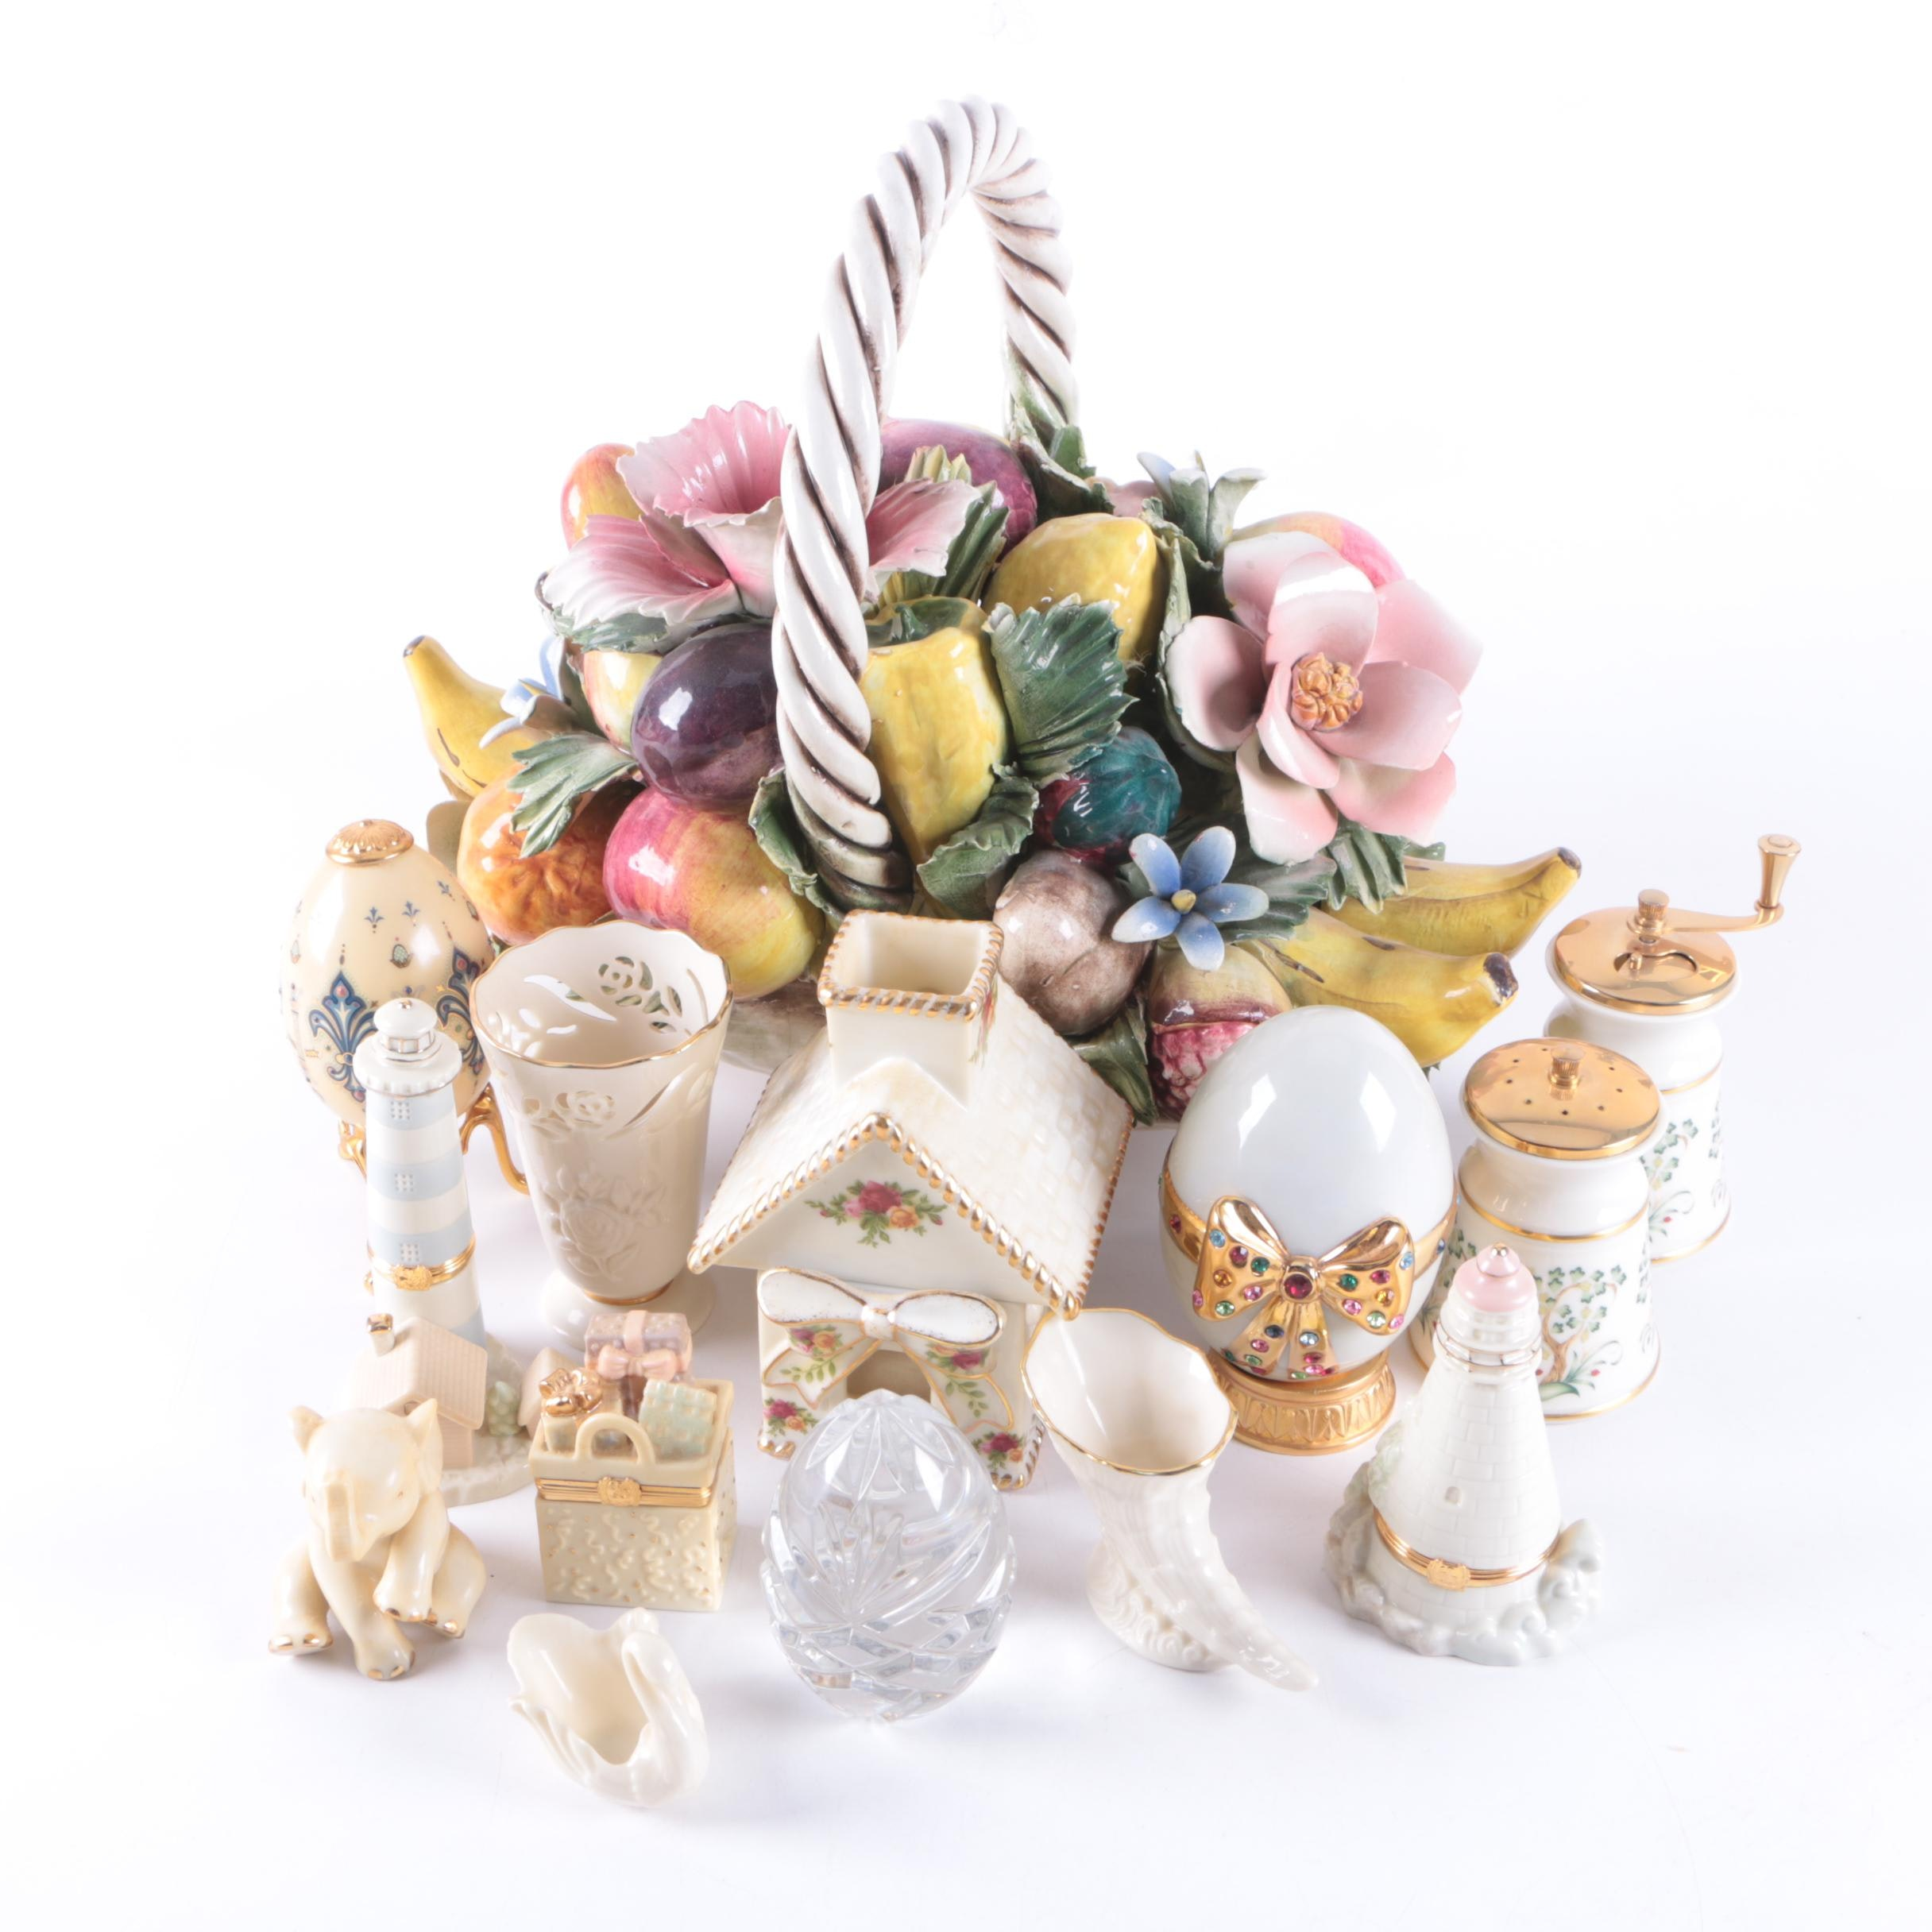 Home Décor and Tableware Featuring Capodimonte and Lenox